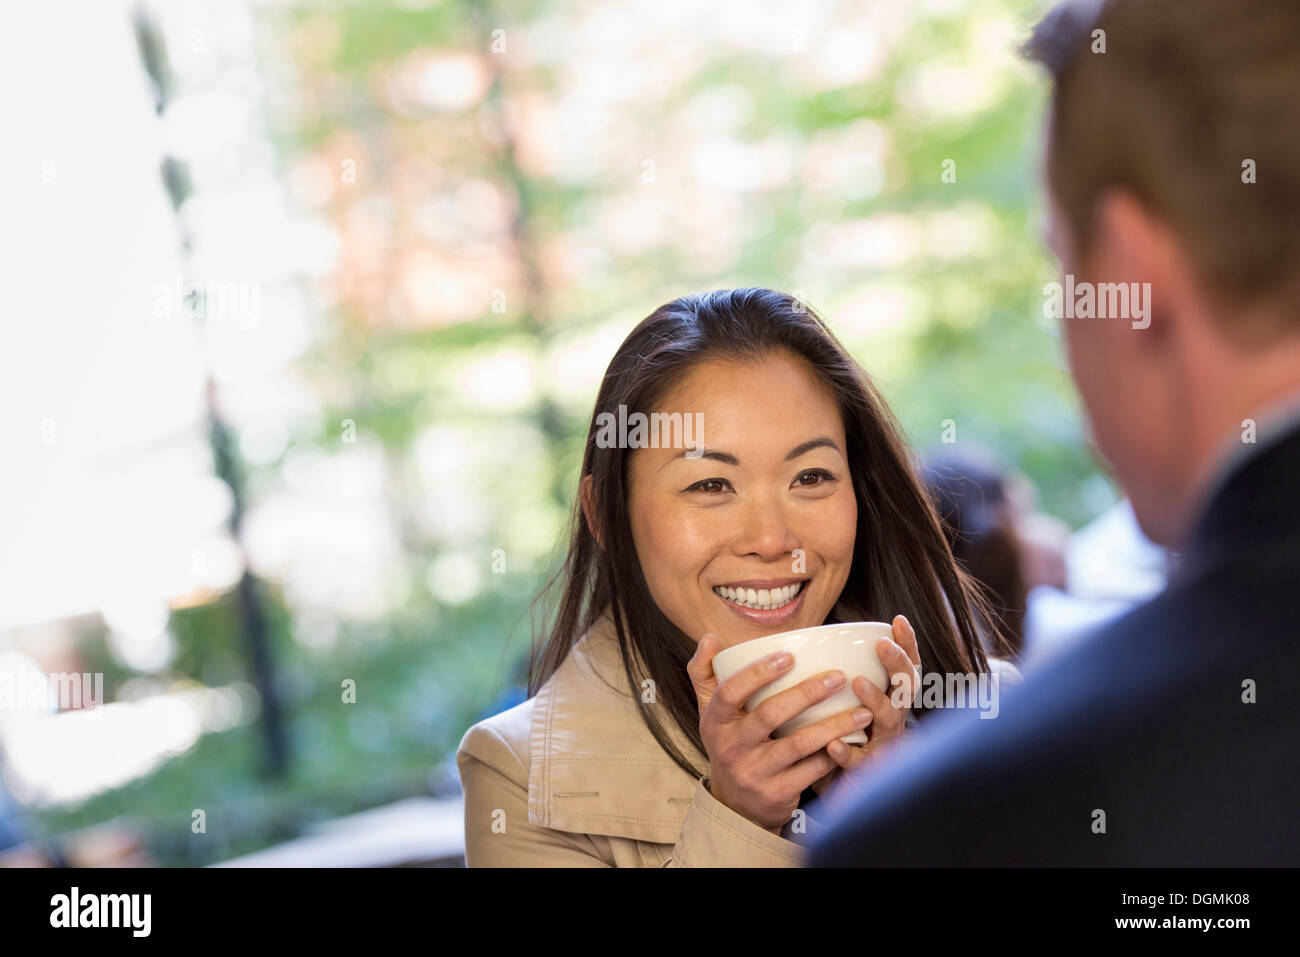 A man and woman sitting in a coffee shop. - Stock Image